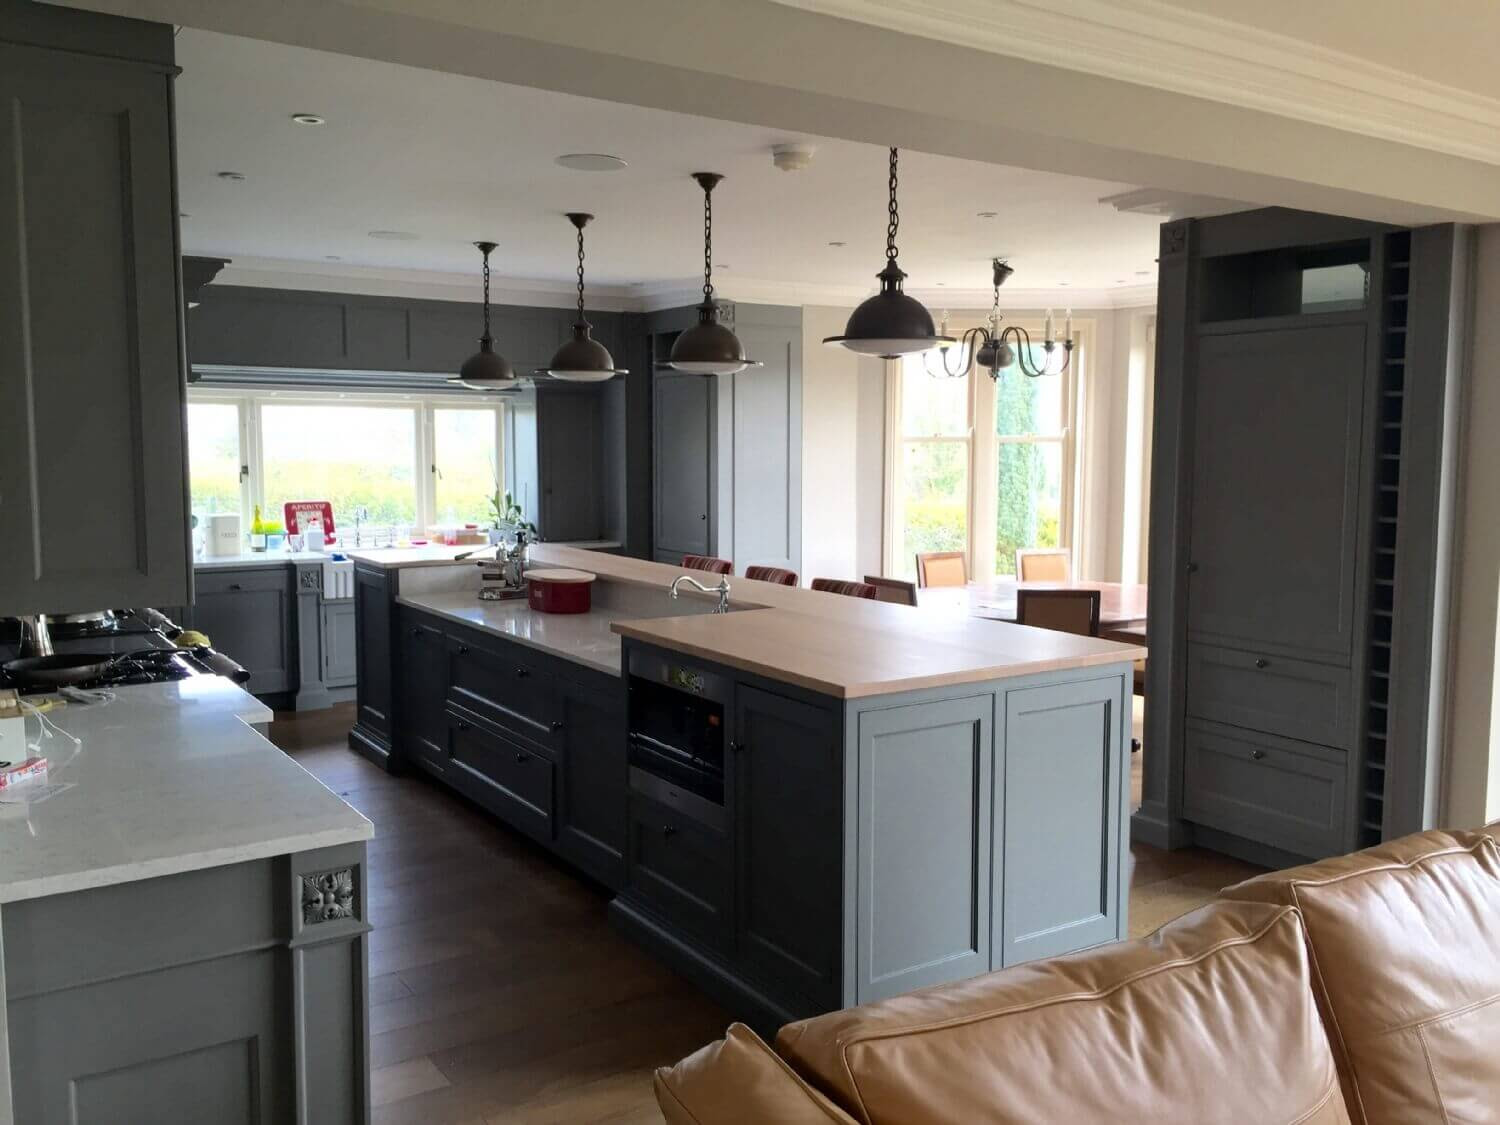 Hand Painted Kitchens • FX Decor